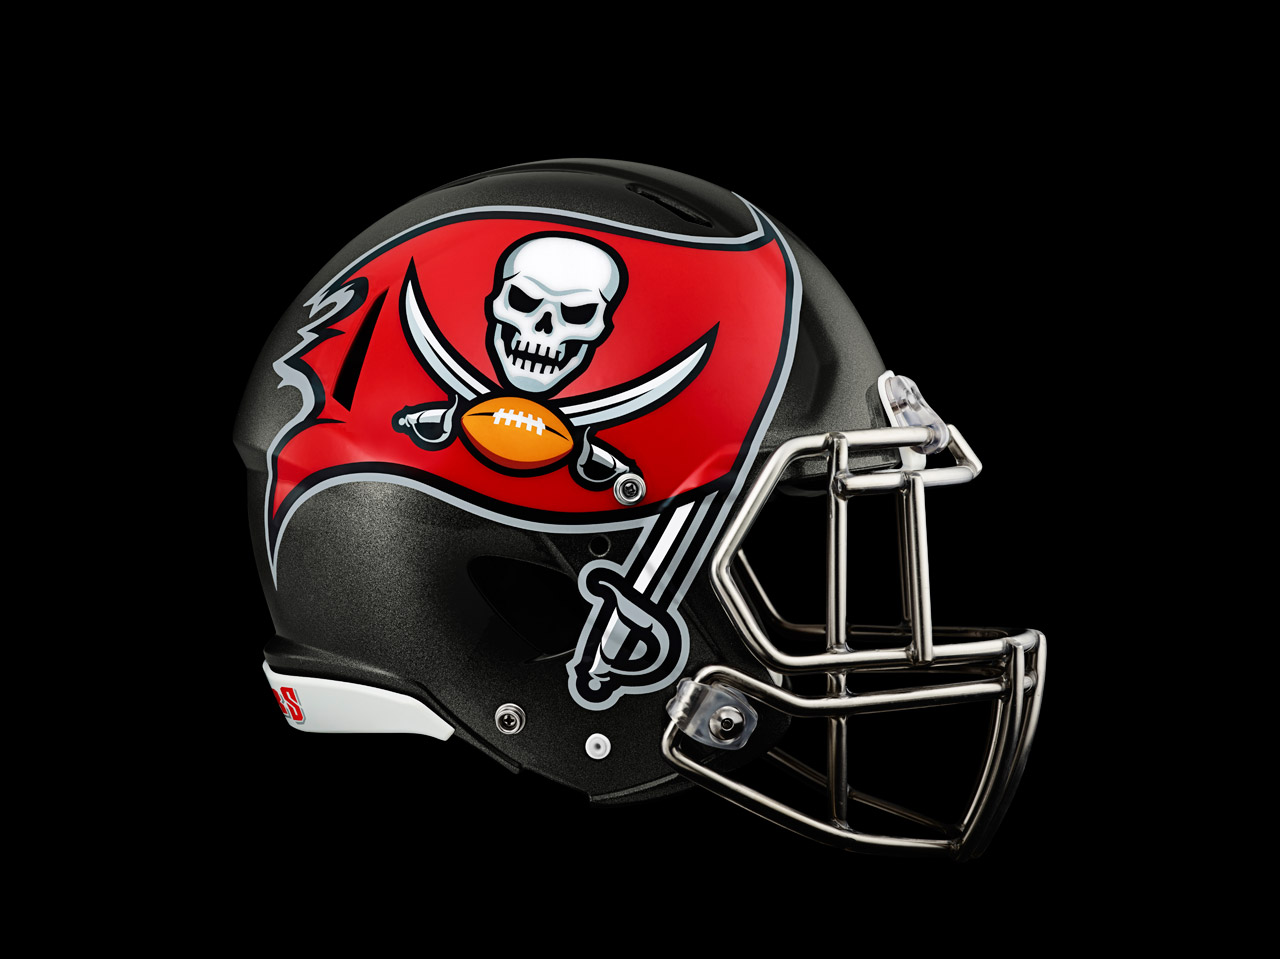 The new, enlarged Bucs' helmet logo